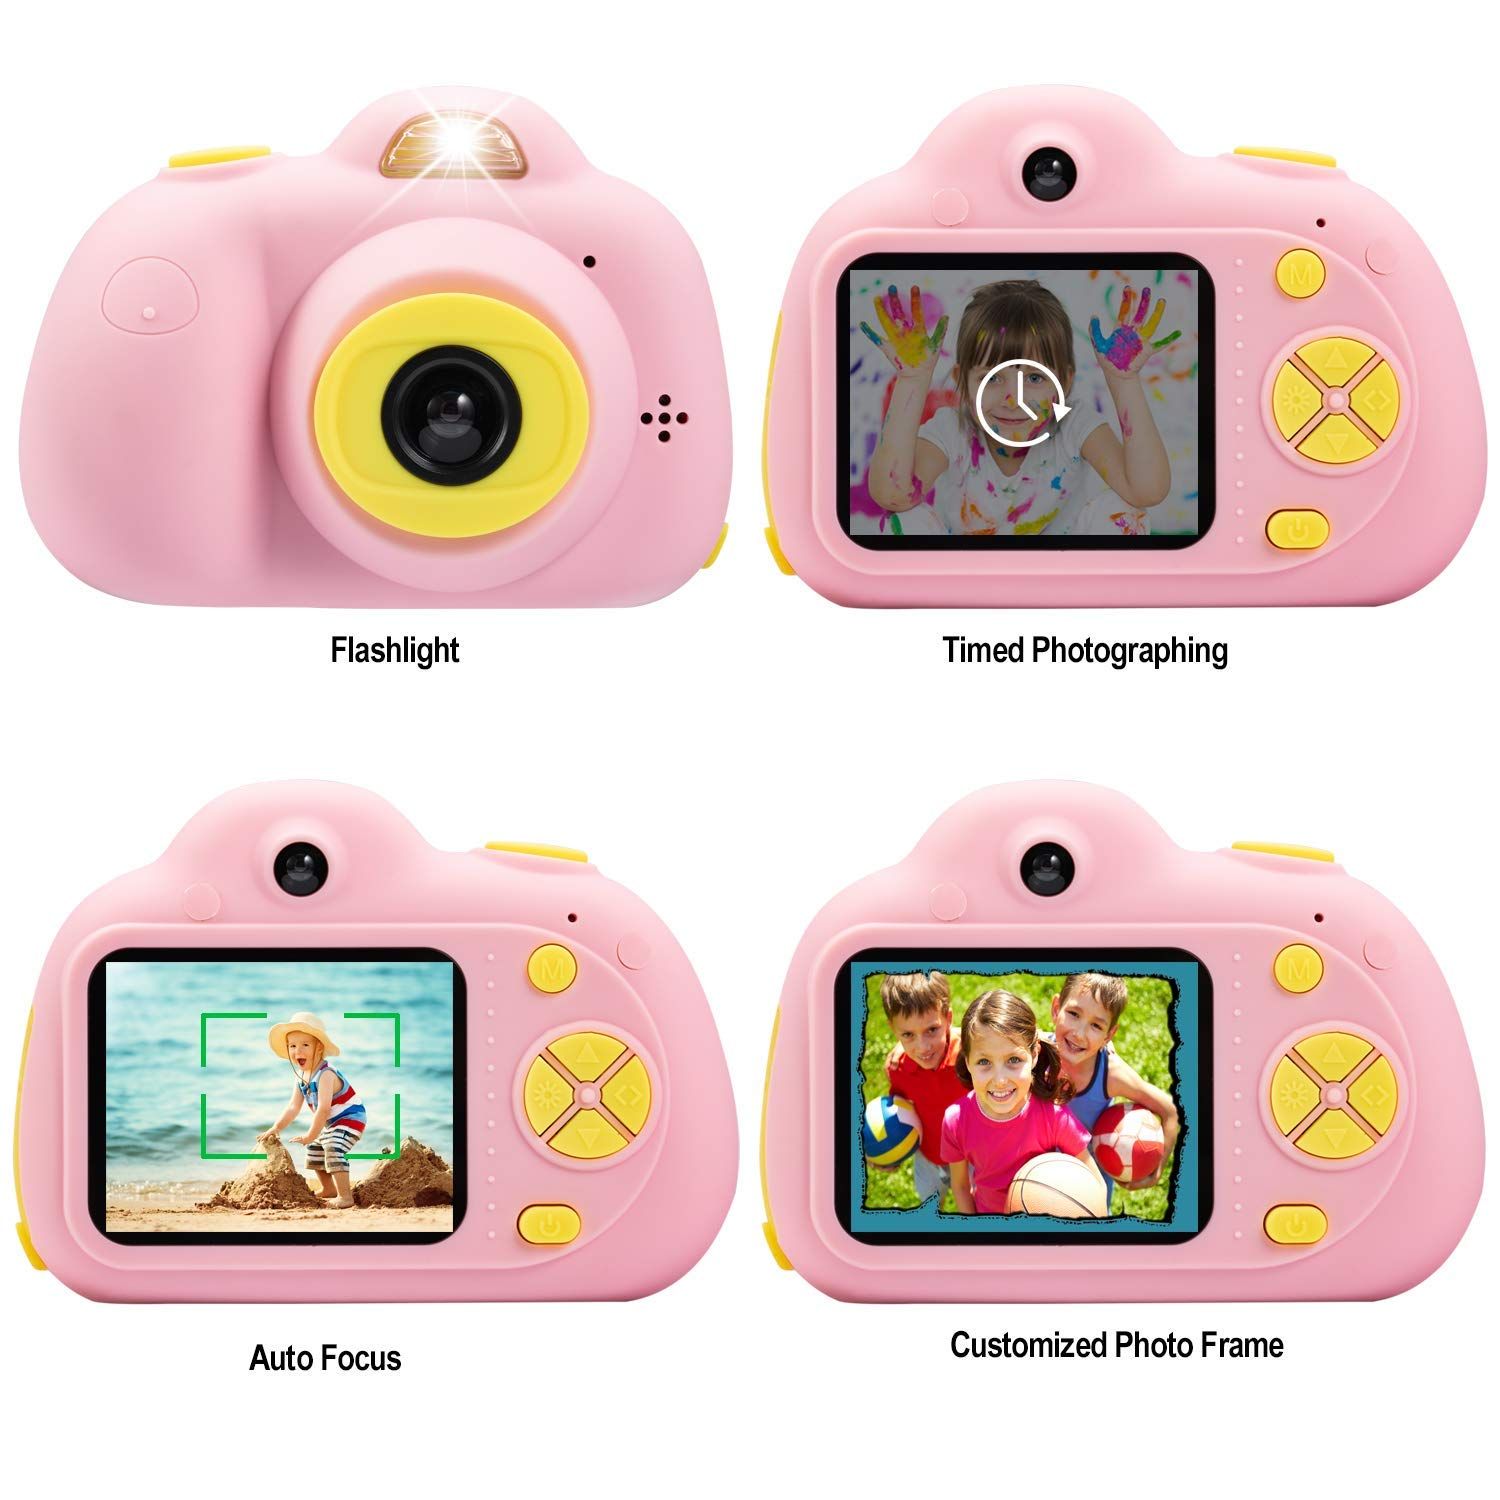 Balee Kids Digital Camera 2 inch Screen Digital Video Camera Creative DIY Selfie Camera for Kids with 16GB Memory SD Card (Pink) by Balee (Image #6)